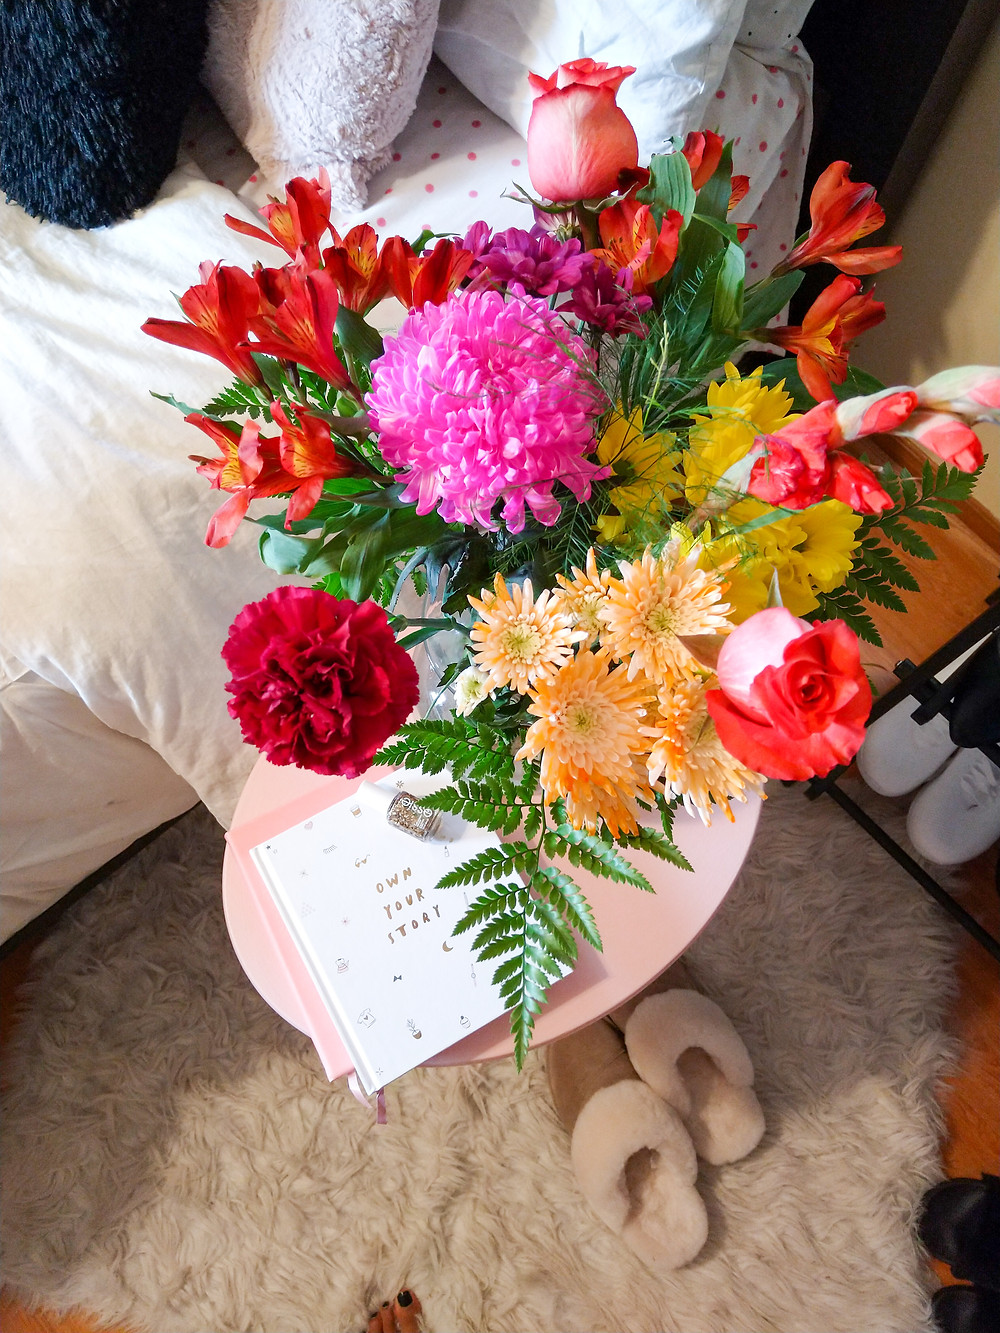 fall flowers by a bed with books and nail polish